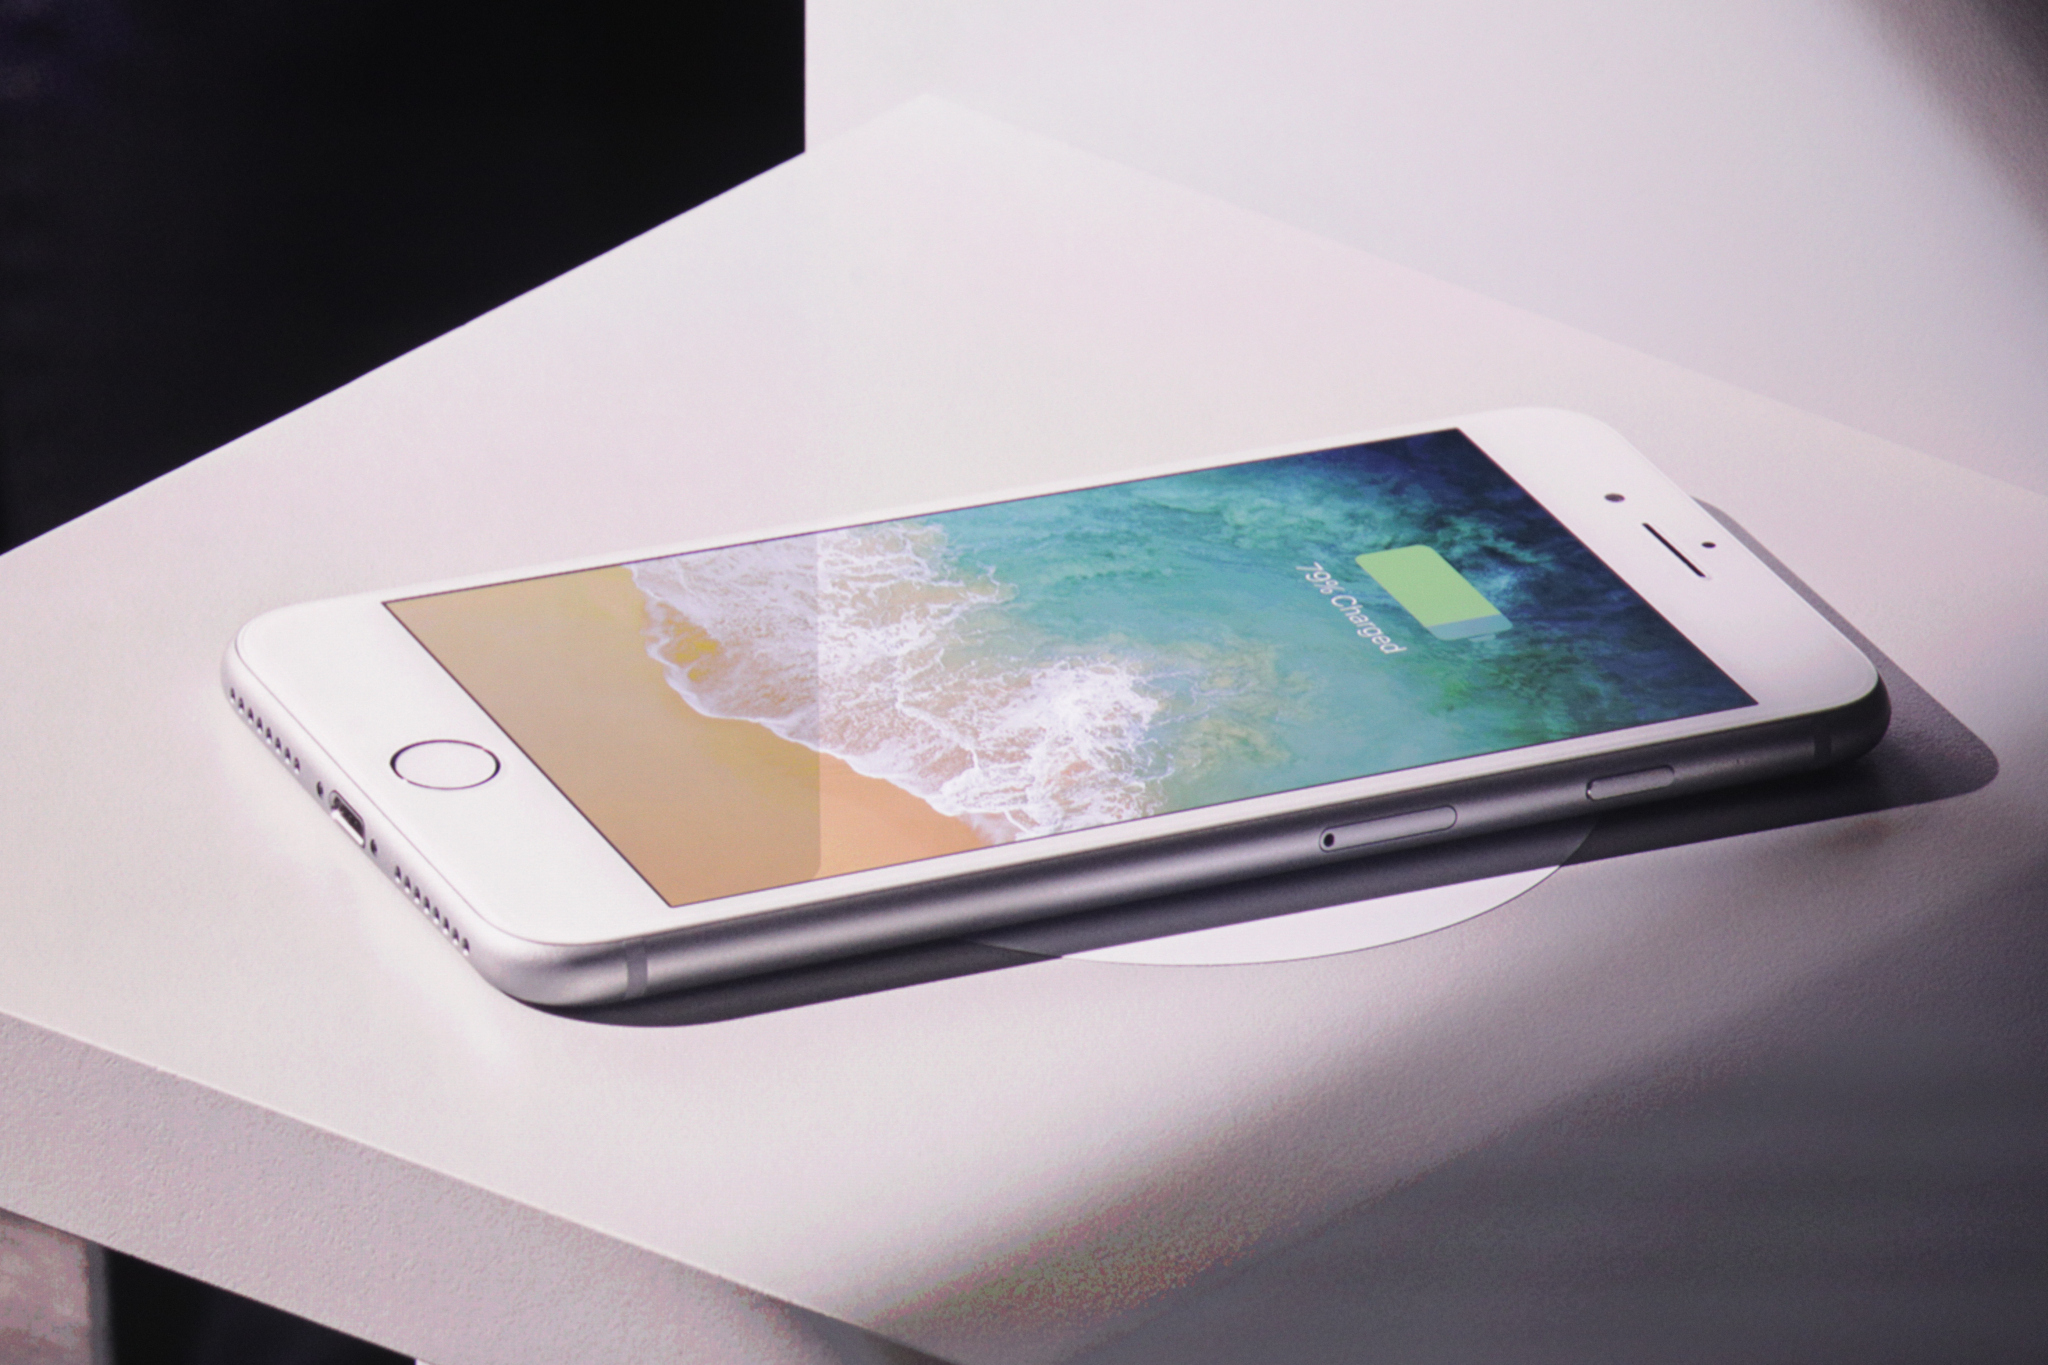 iPhone 8 2 1 Apple iPhone 8 A Dud, Consumers Shun the Device